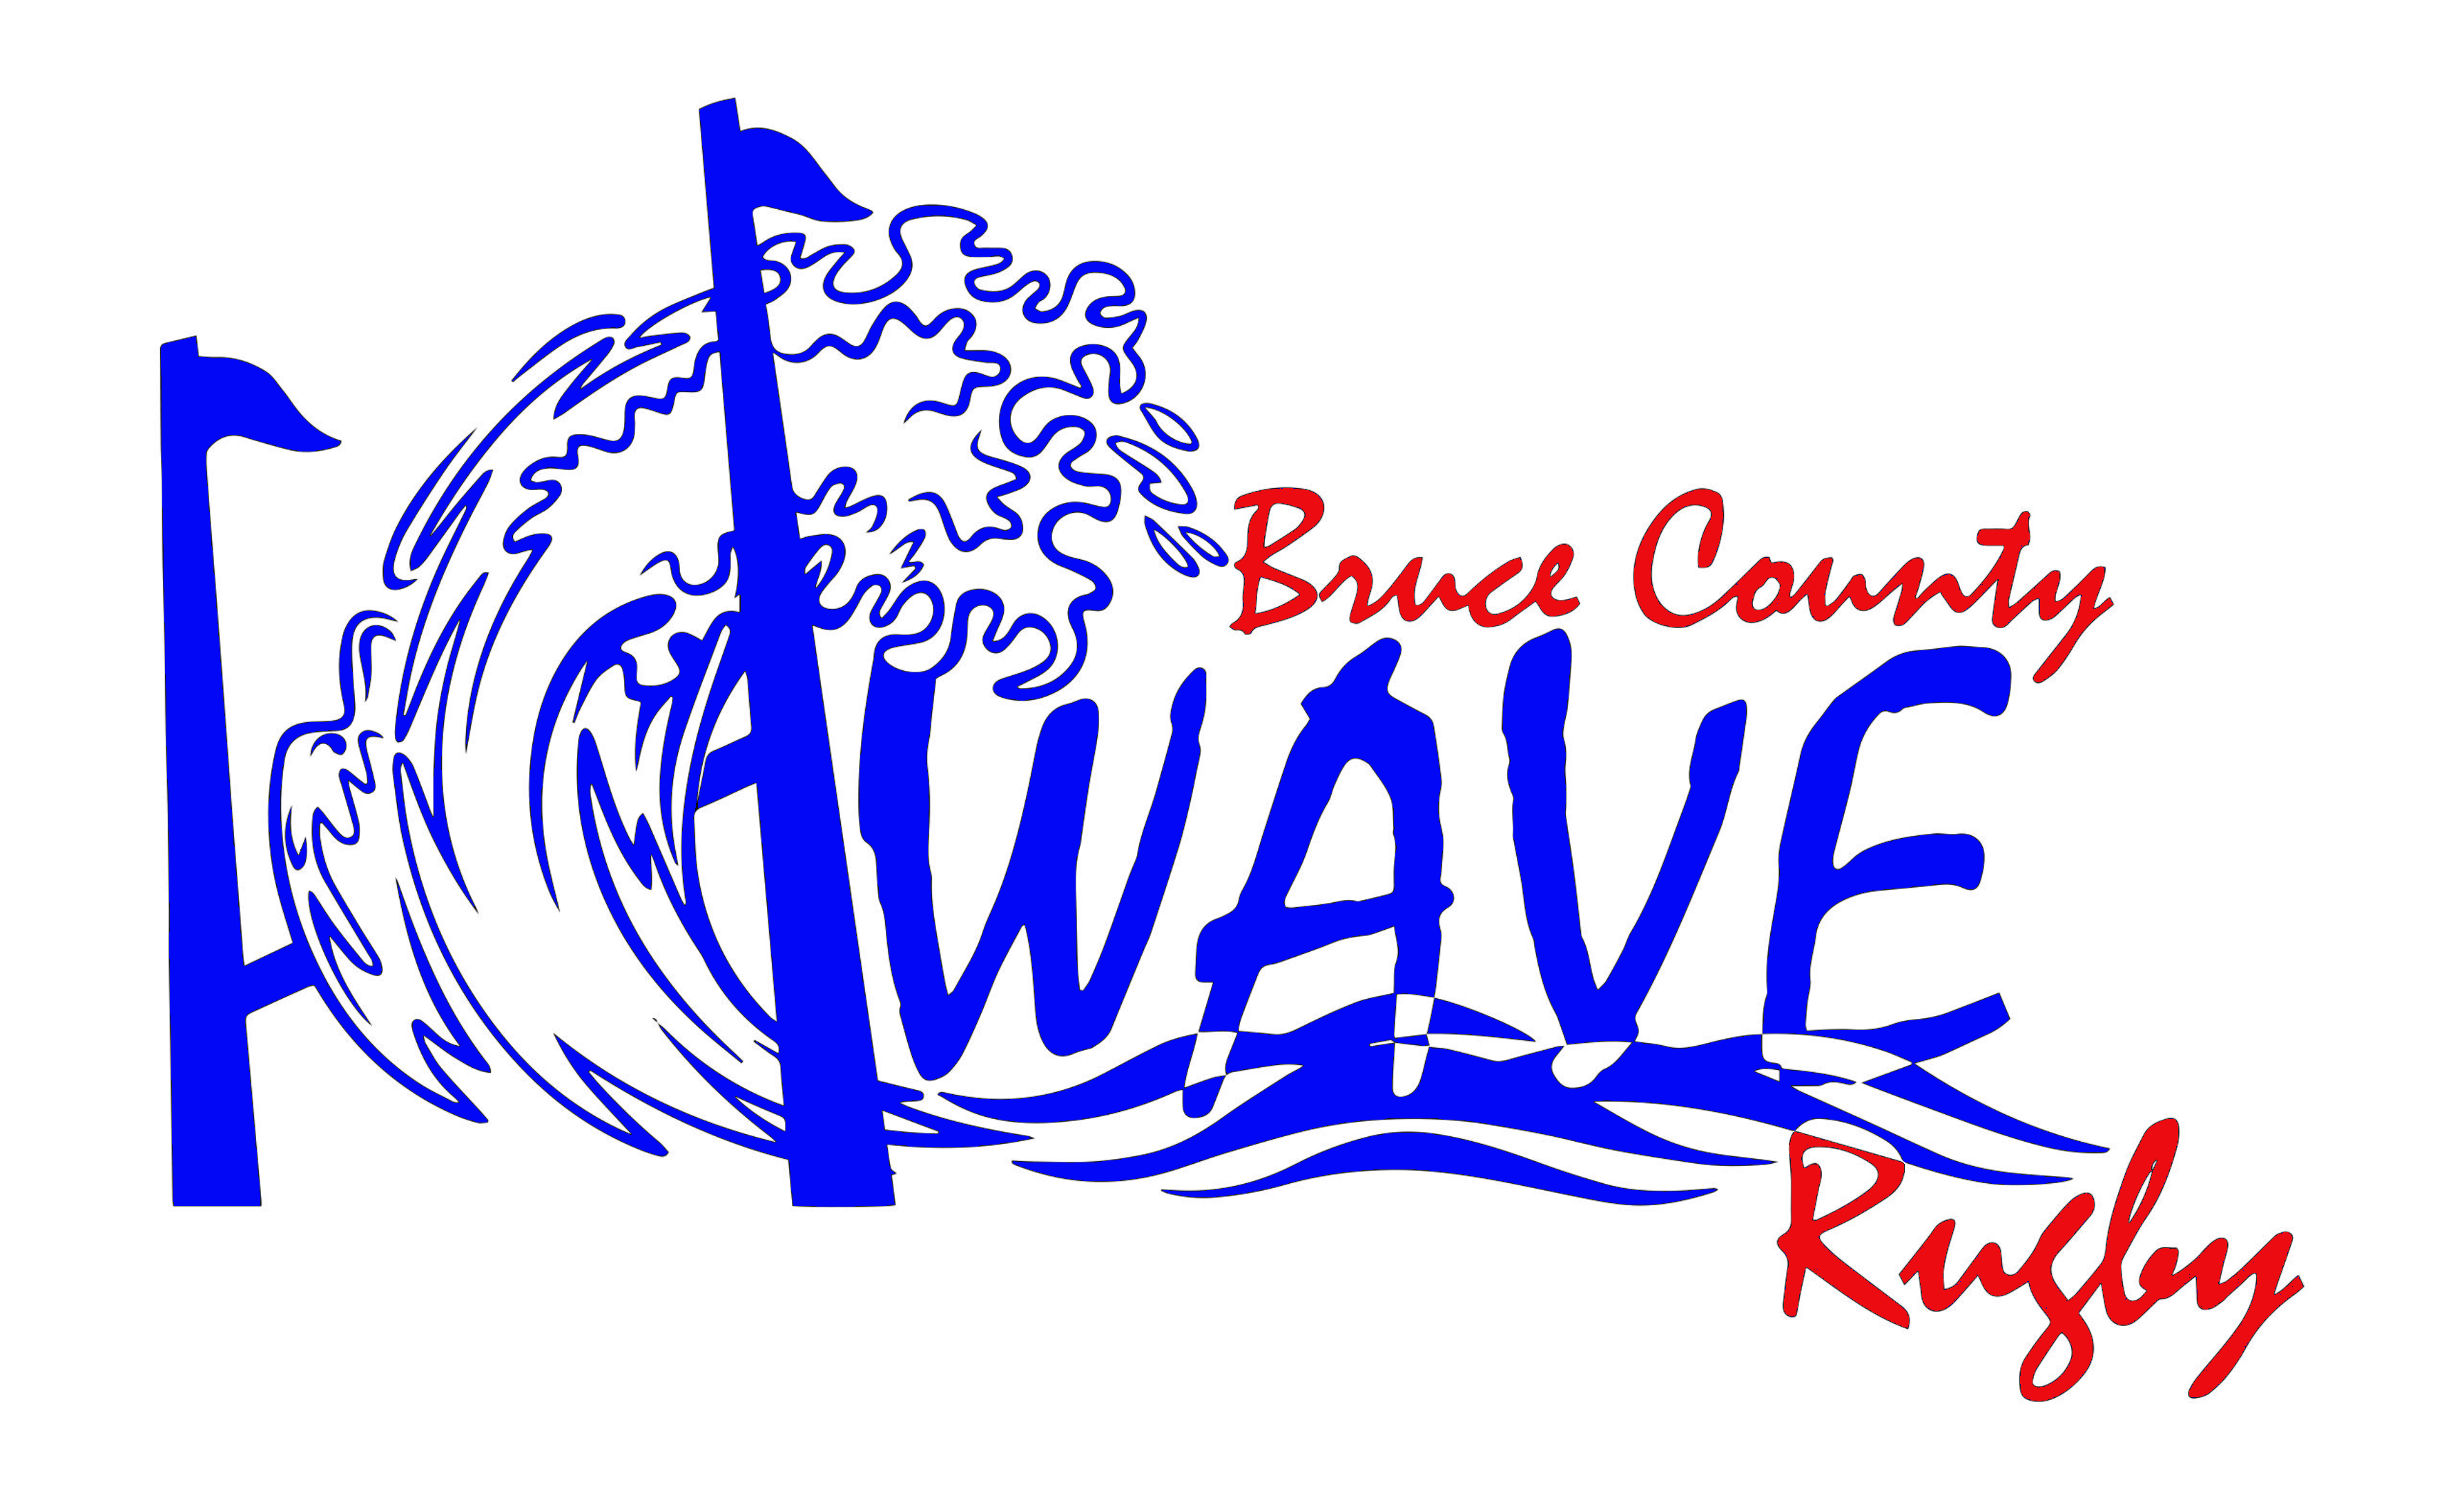 BRUCE COUNTY WAVE RUGBY